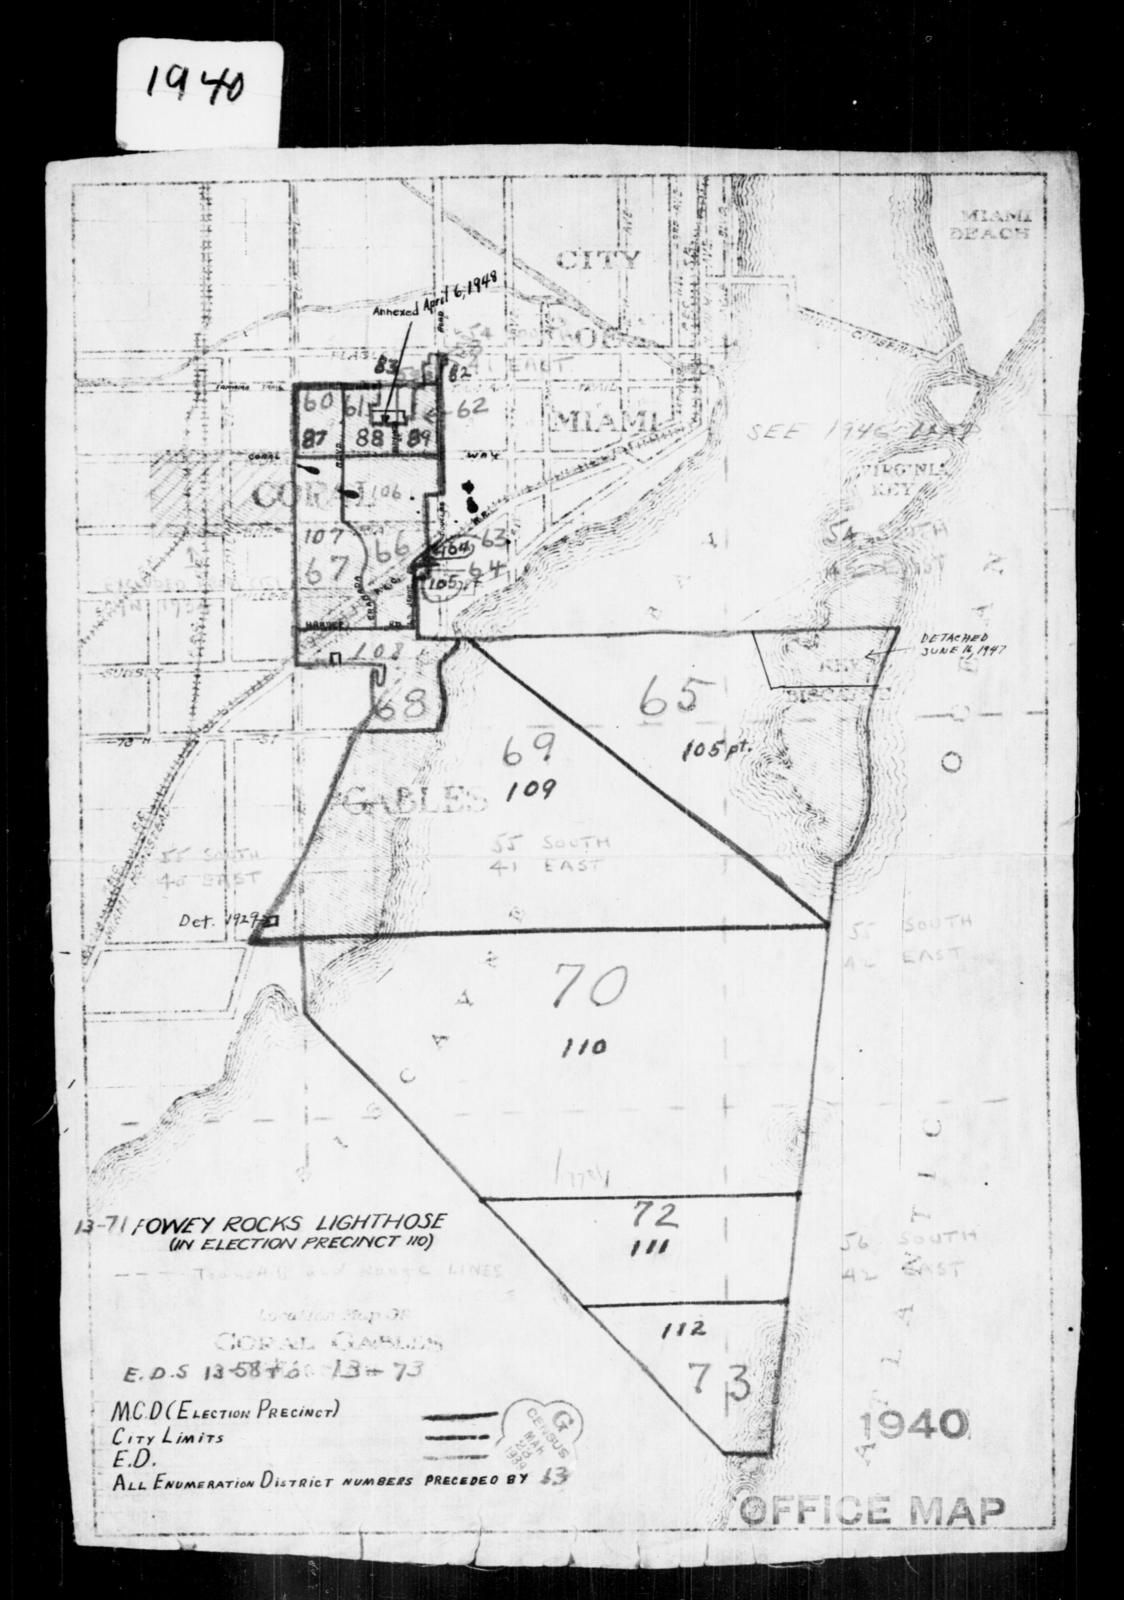 Coral Gables Map Florida.1940 Census Enumeration District Maps Florida Dade County